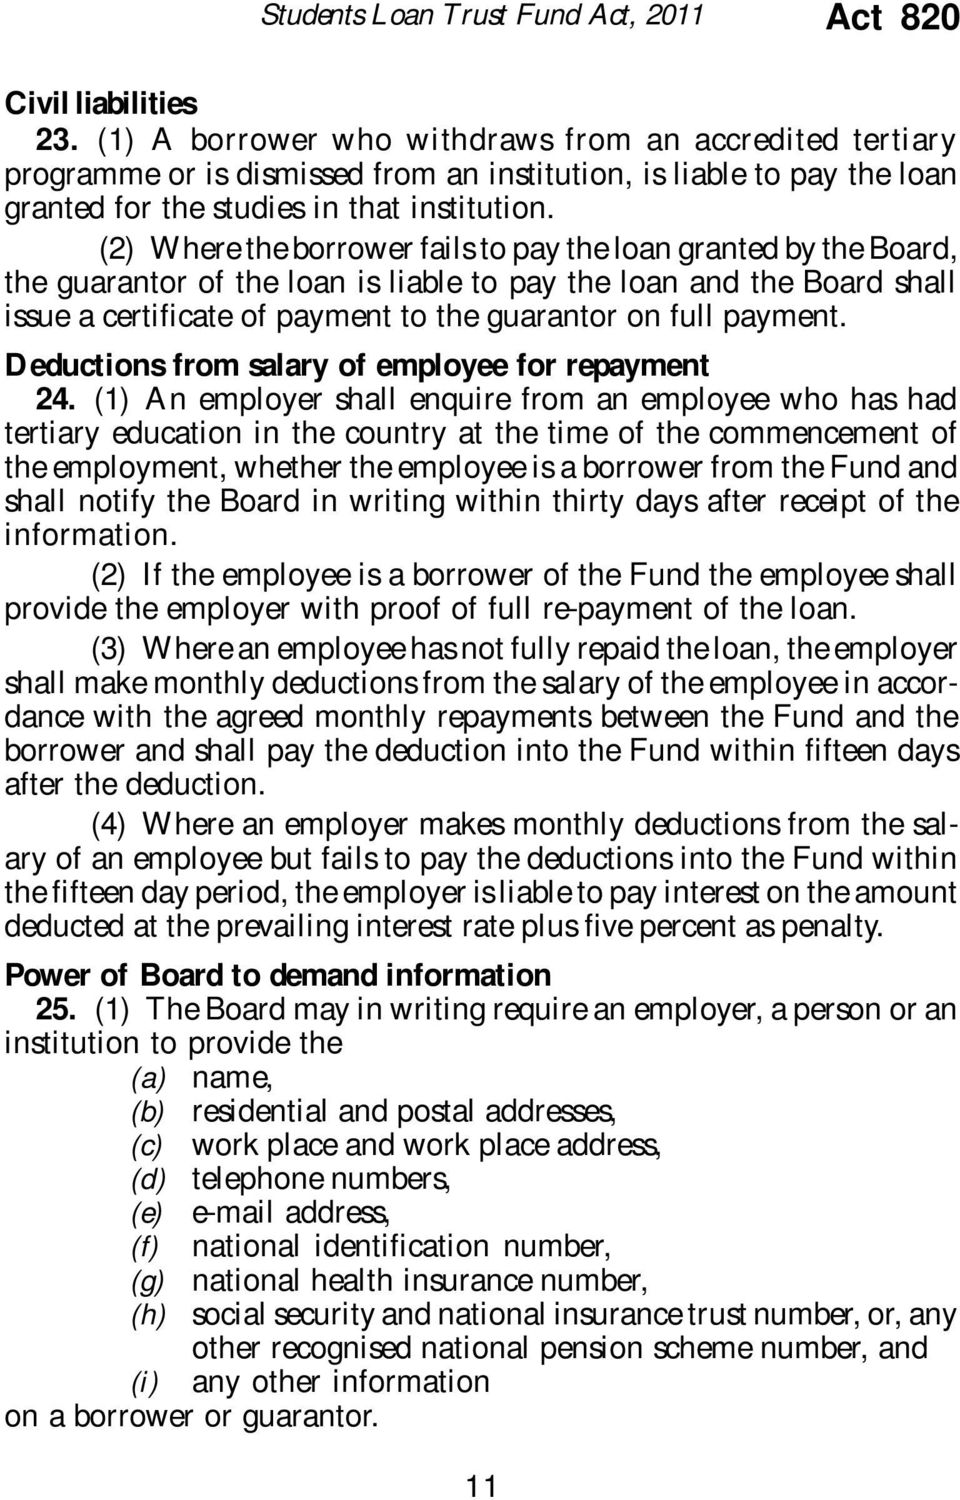 (2) Where the borrower fails to pay the loan granted by the Board, the guarantor of the loan is liable to pay the loan and the Board shall issue a certificate of payment to the guarantor on full